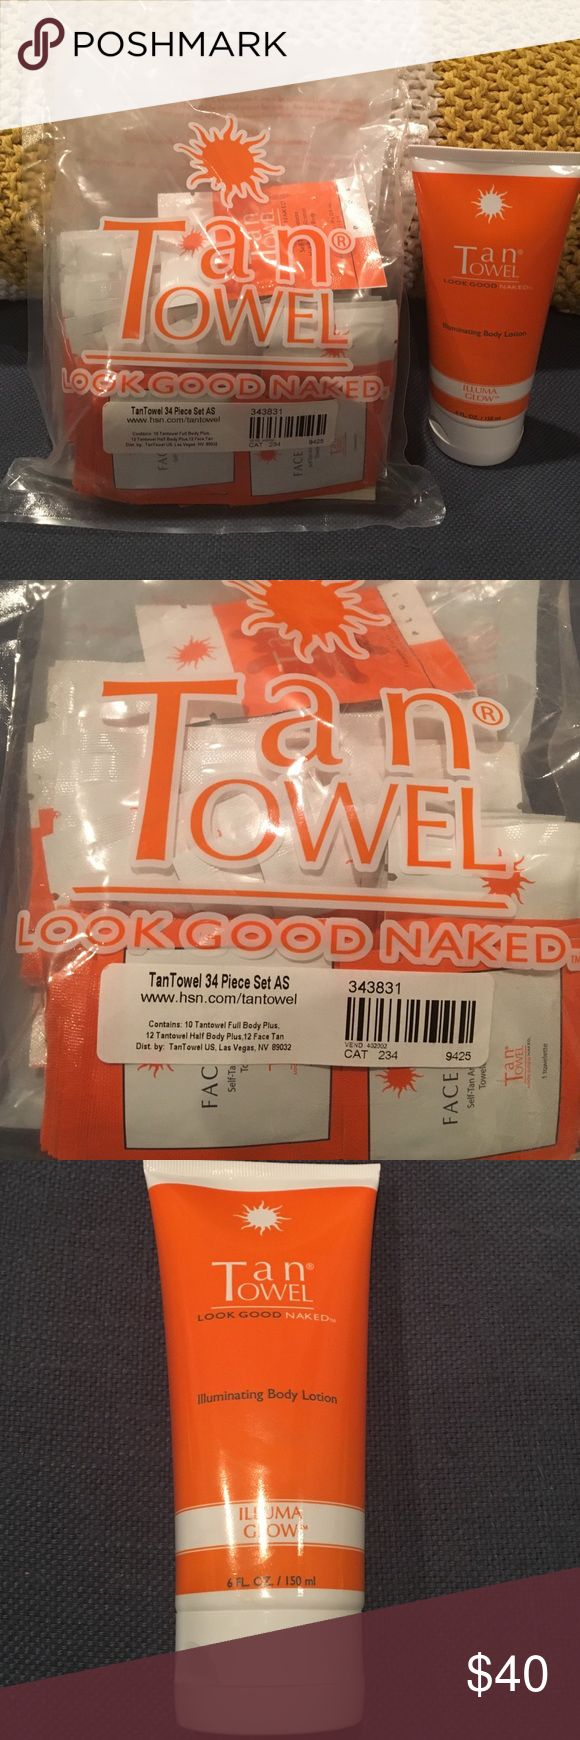 Tan towel and illuminating body lotion 34 piece set of tan towels and 6oz of tan towel illuminating body lotion 👙☀️ Other